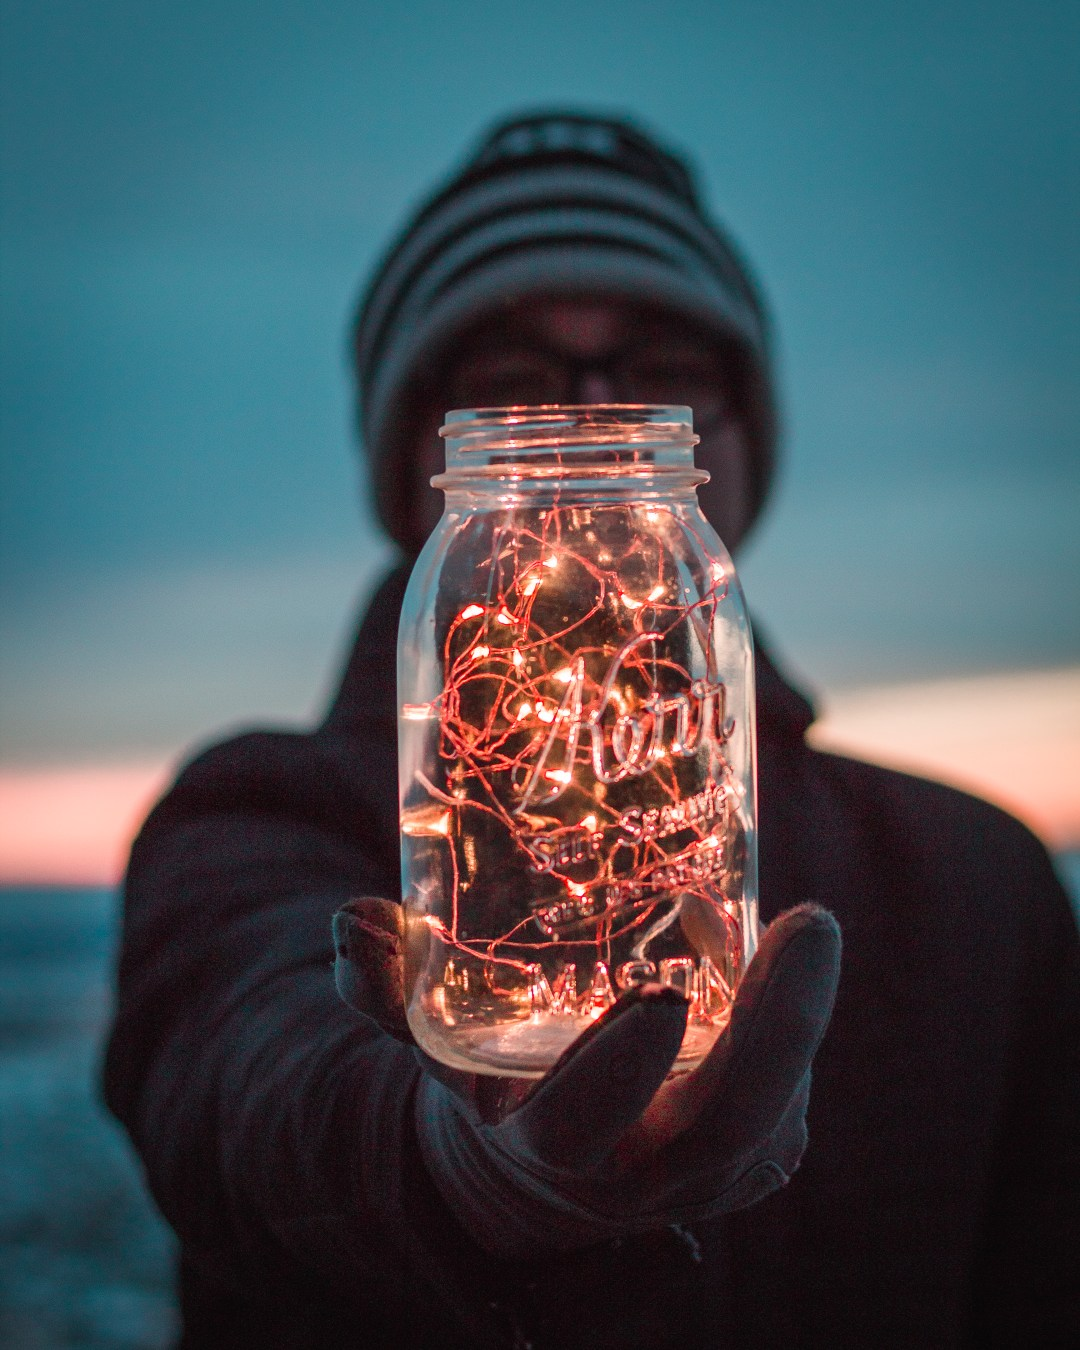 Creative Hd Wallpapers Free Download Lights Fairy Lights Jar And Glass Hd Photo By Garidy